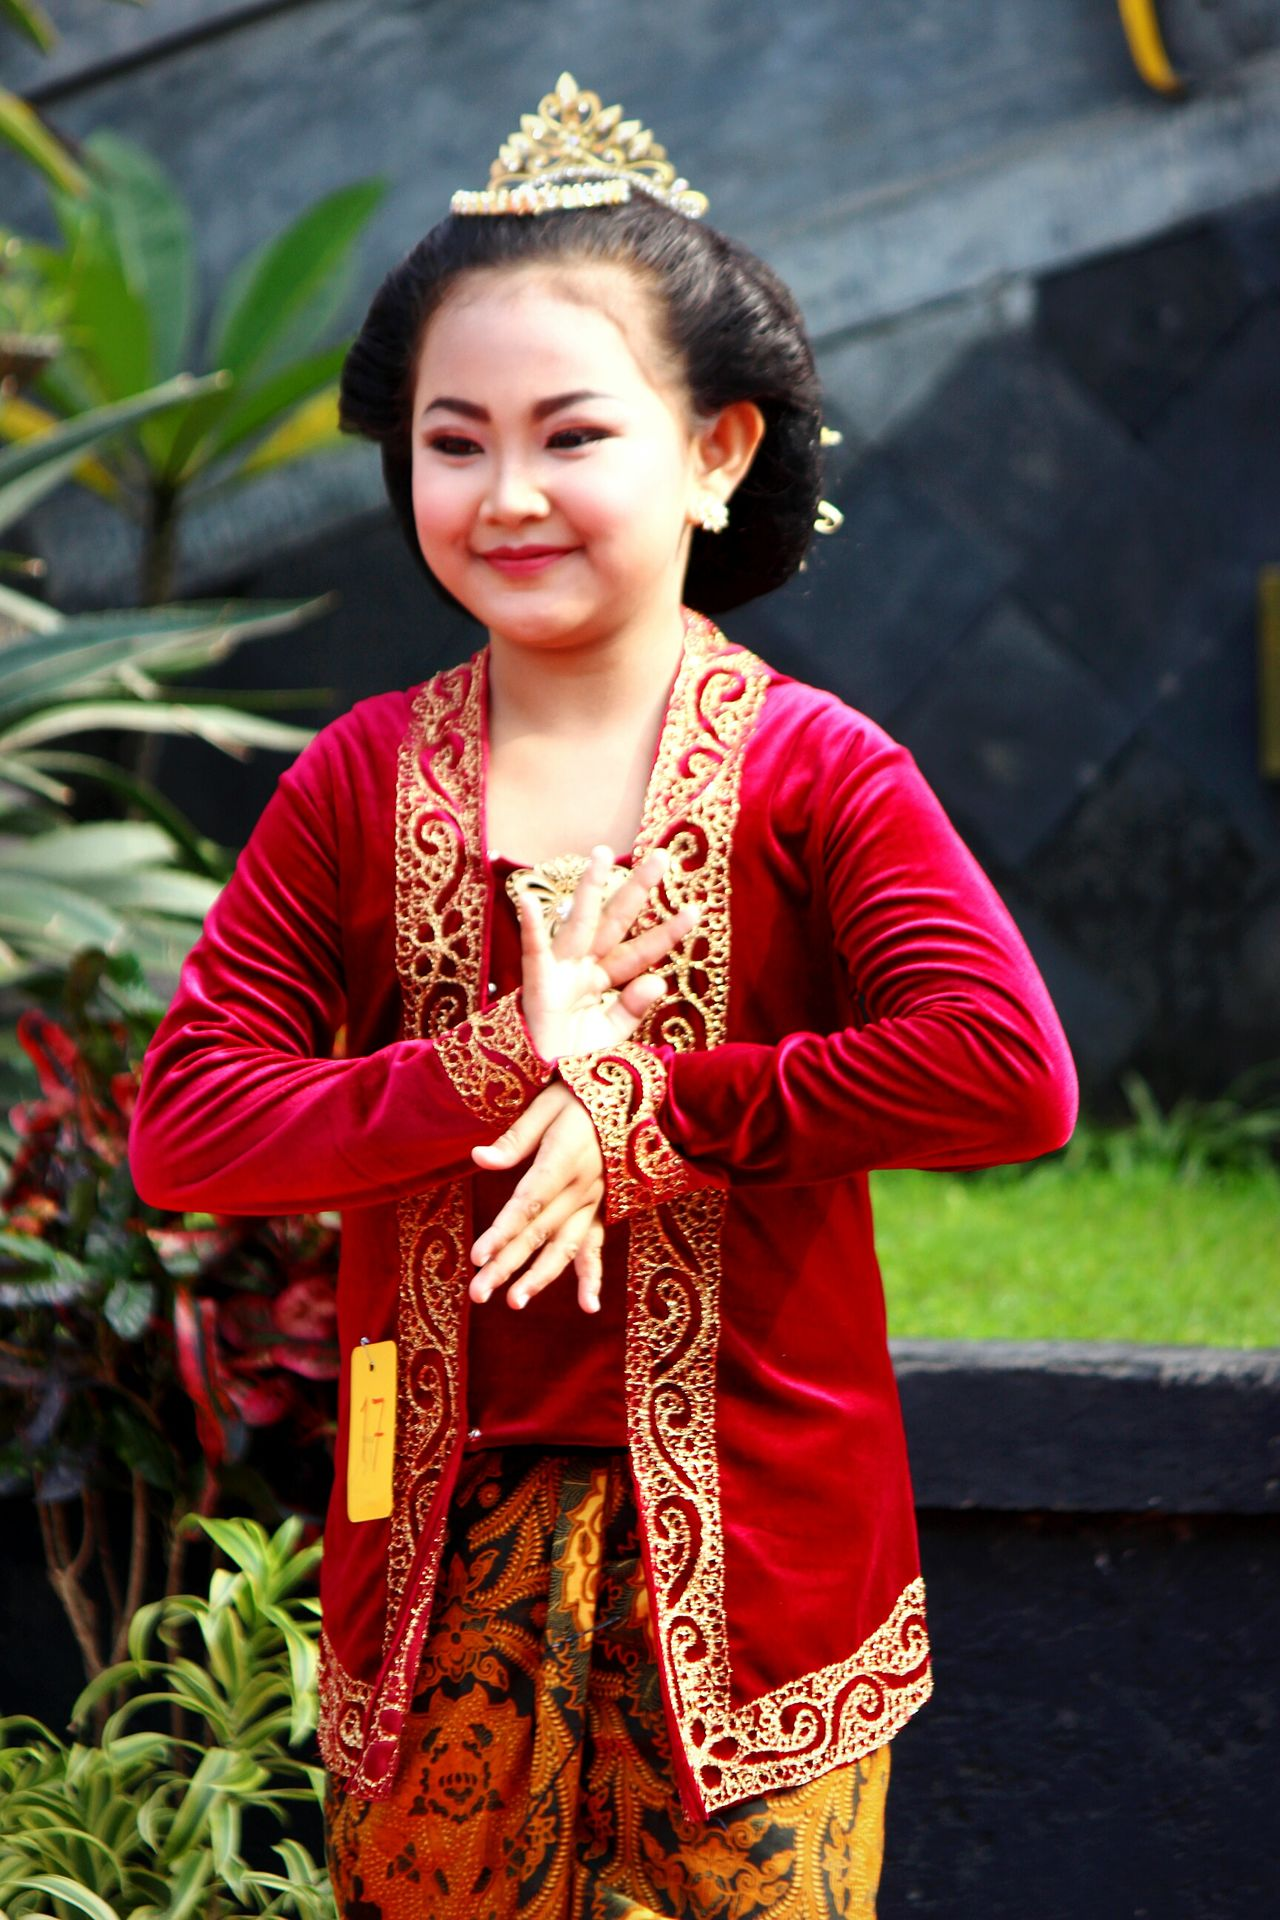 Beautiful Woman People Cultures Beauty Java Indonesia Java Culture Java Peoples Jawatengah Tradisional Clothing Traditional Clothing